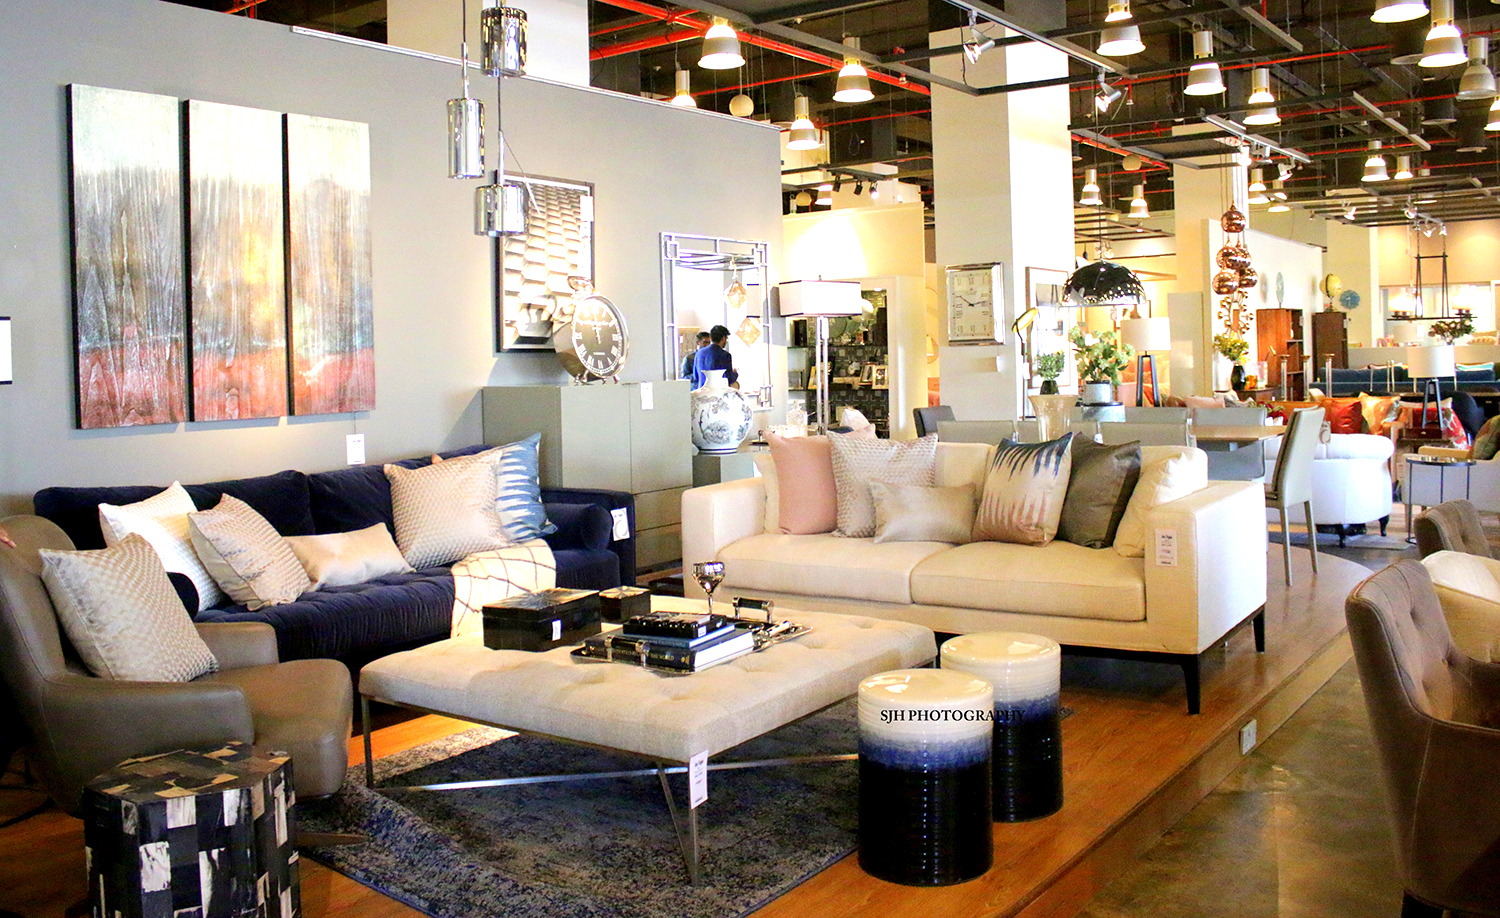 indigo living an upscale home furnishing store